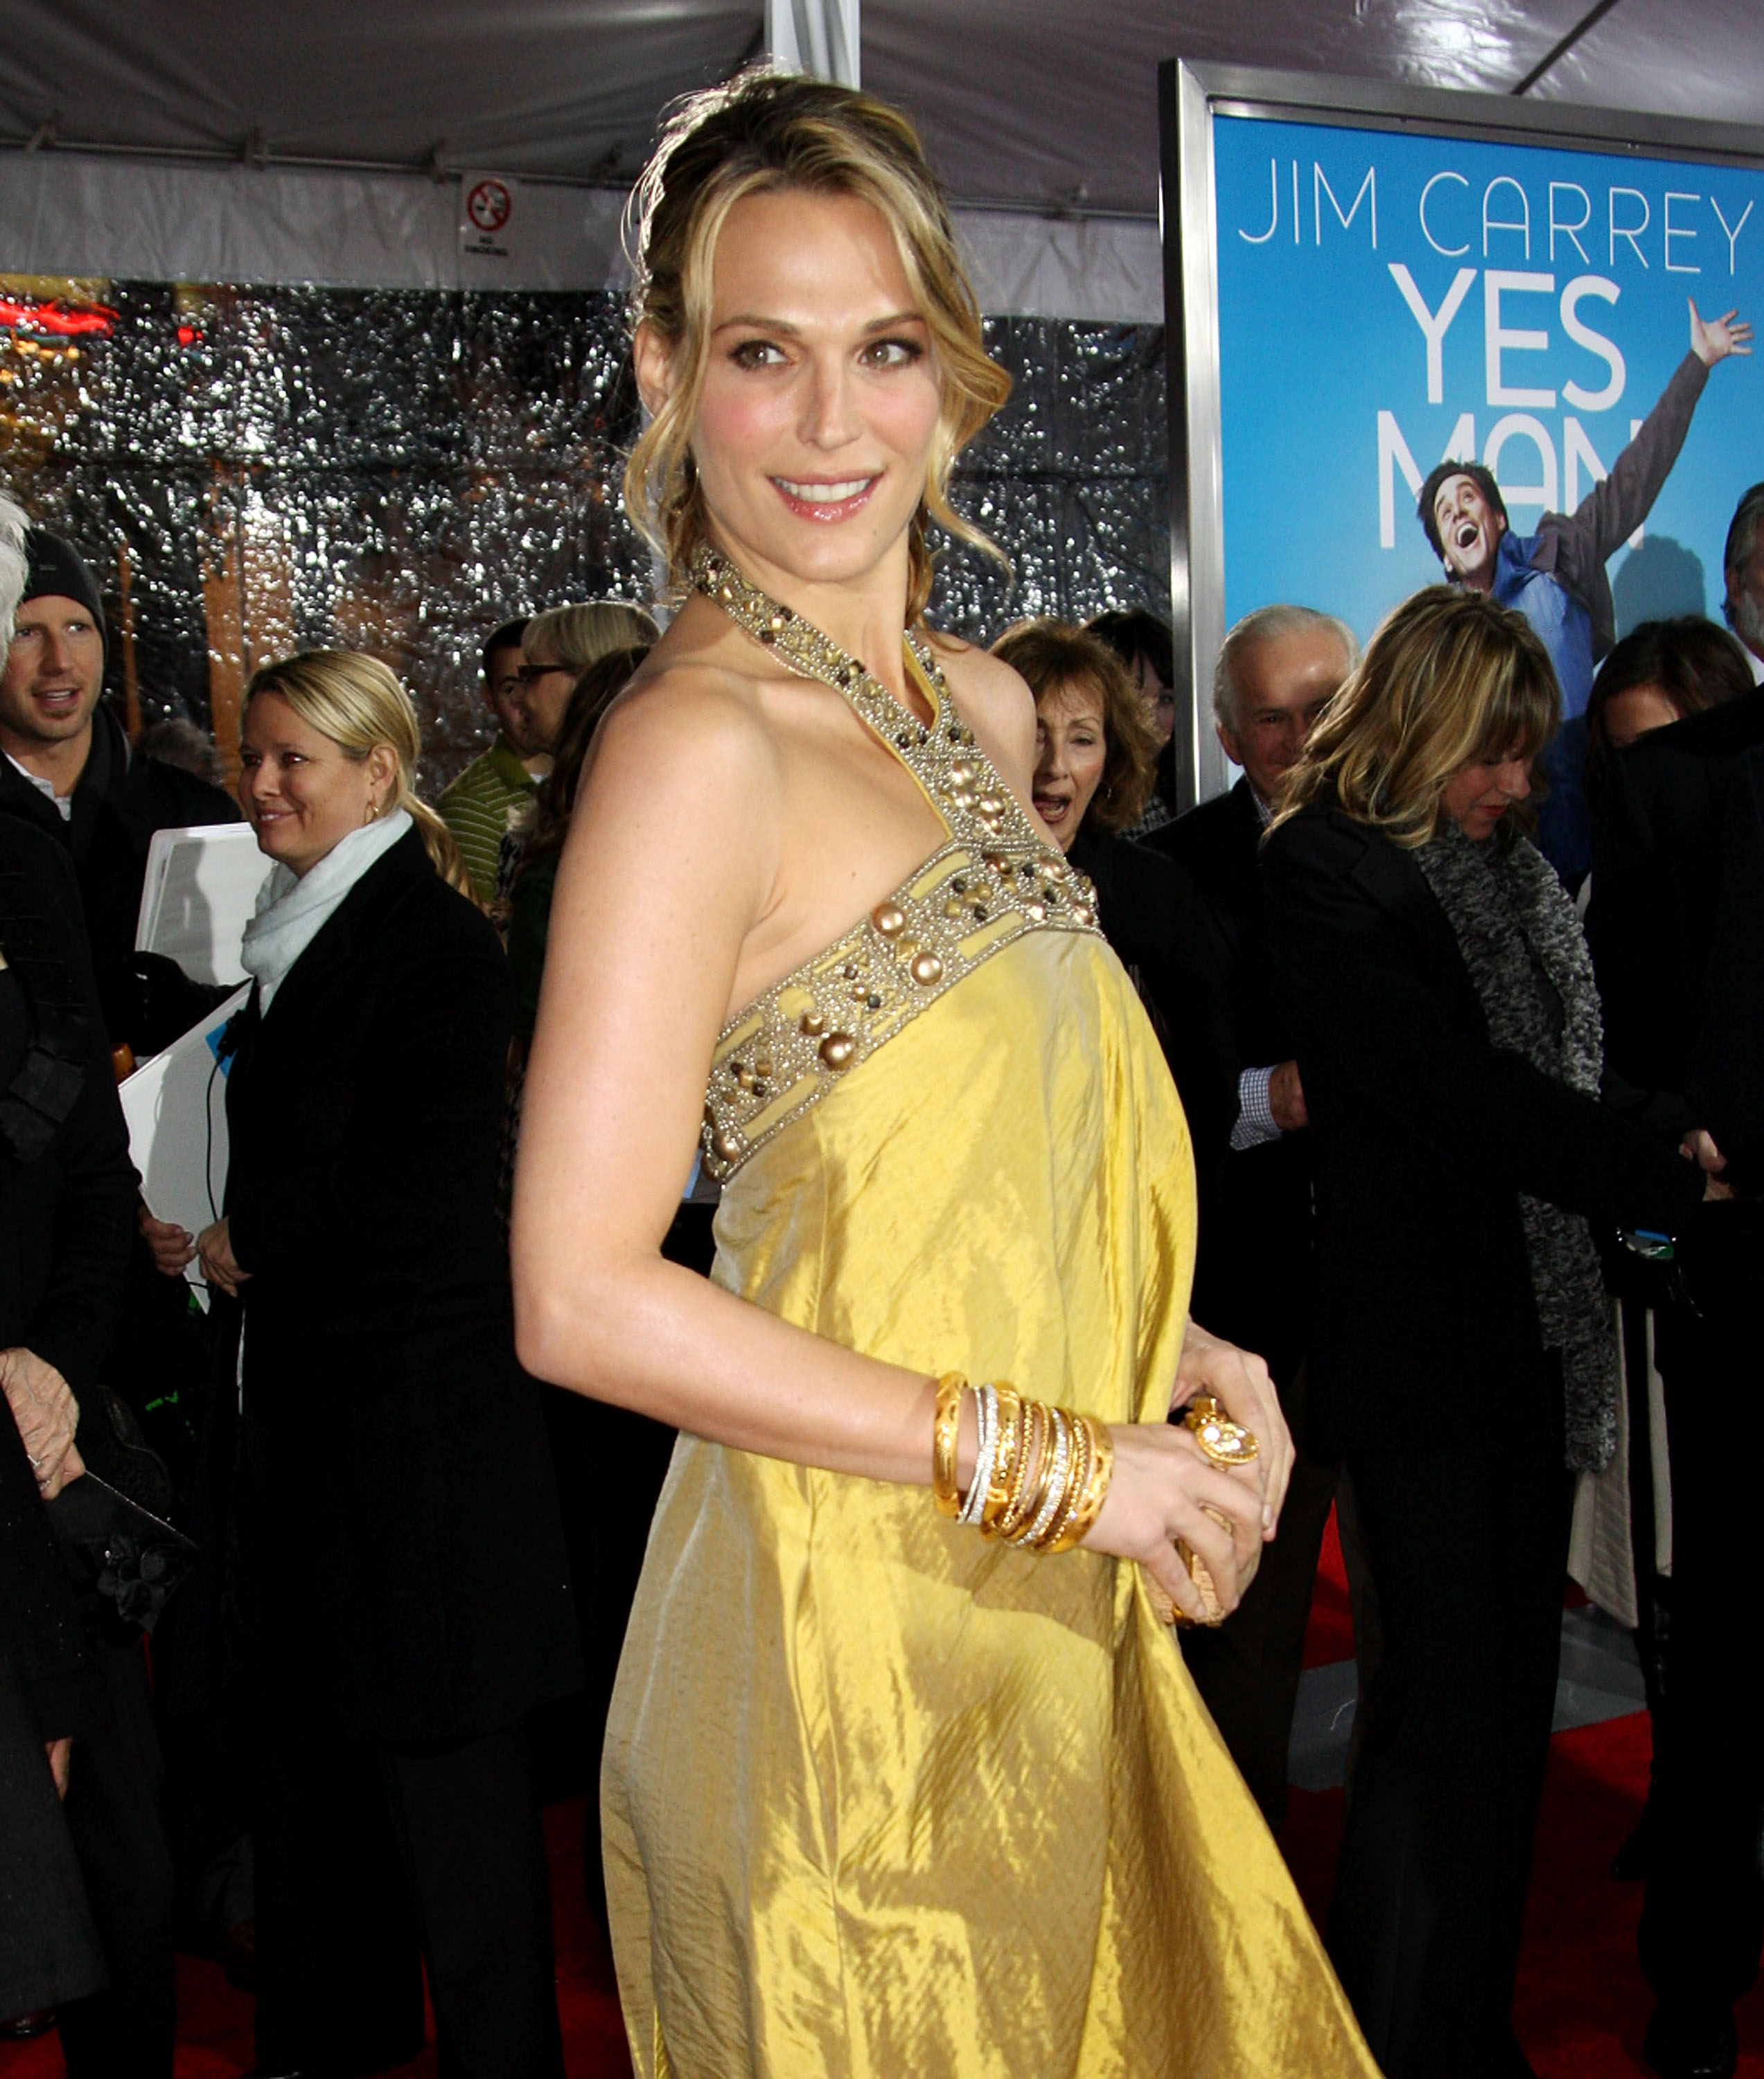 84038_Celebutopia-Molly_Sims-Yes_Man_premiere_in_Los_Angeles-09_122_194lo.jpg